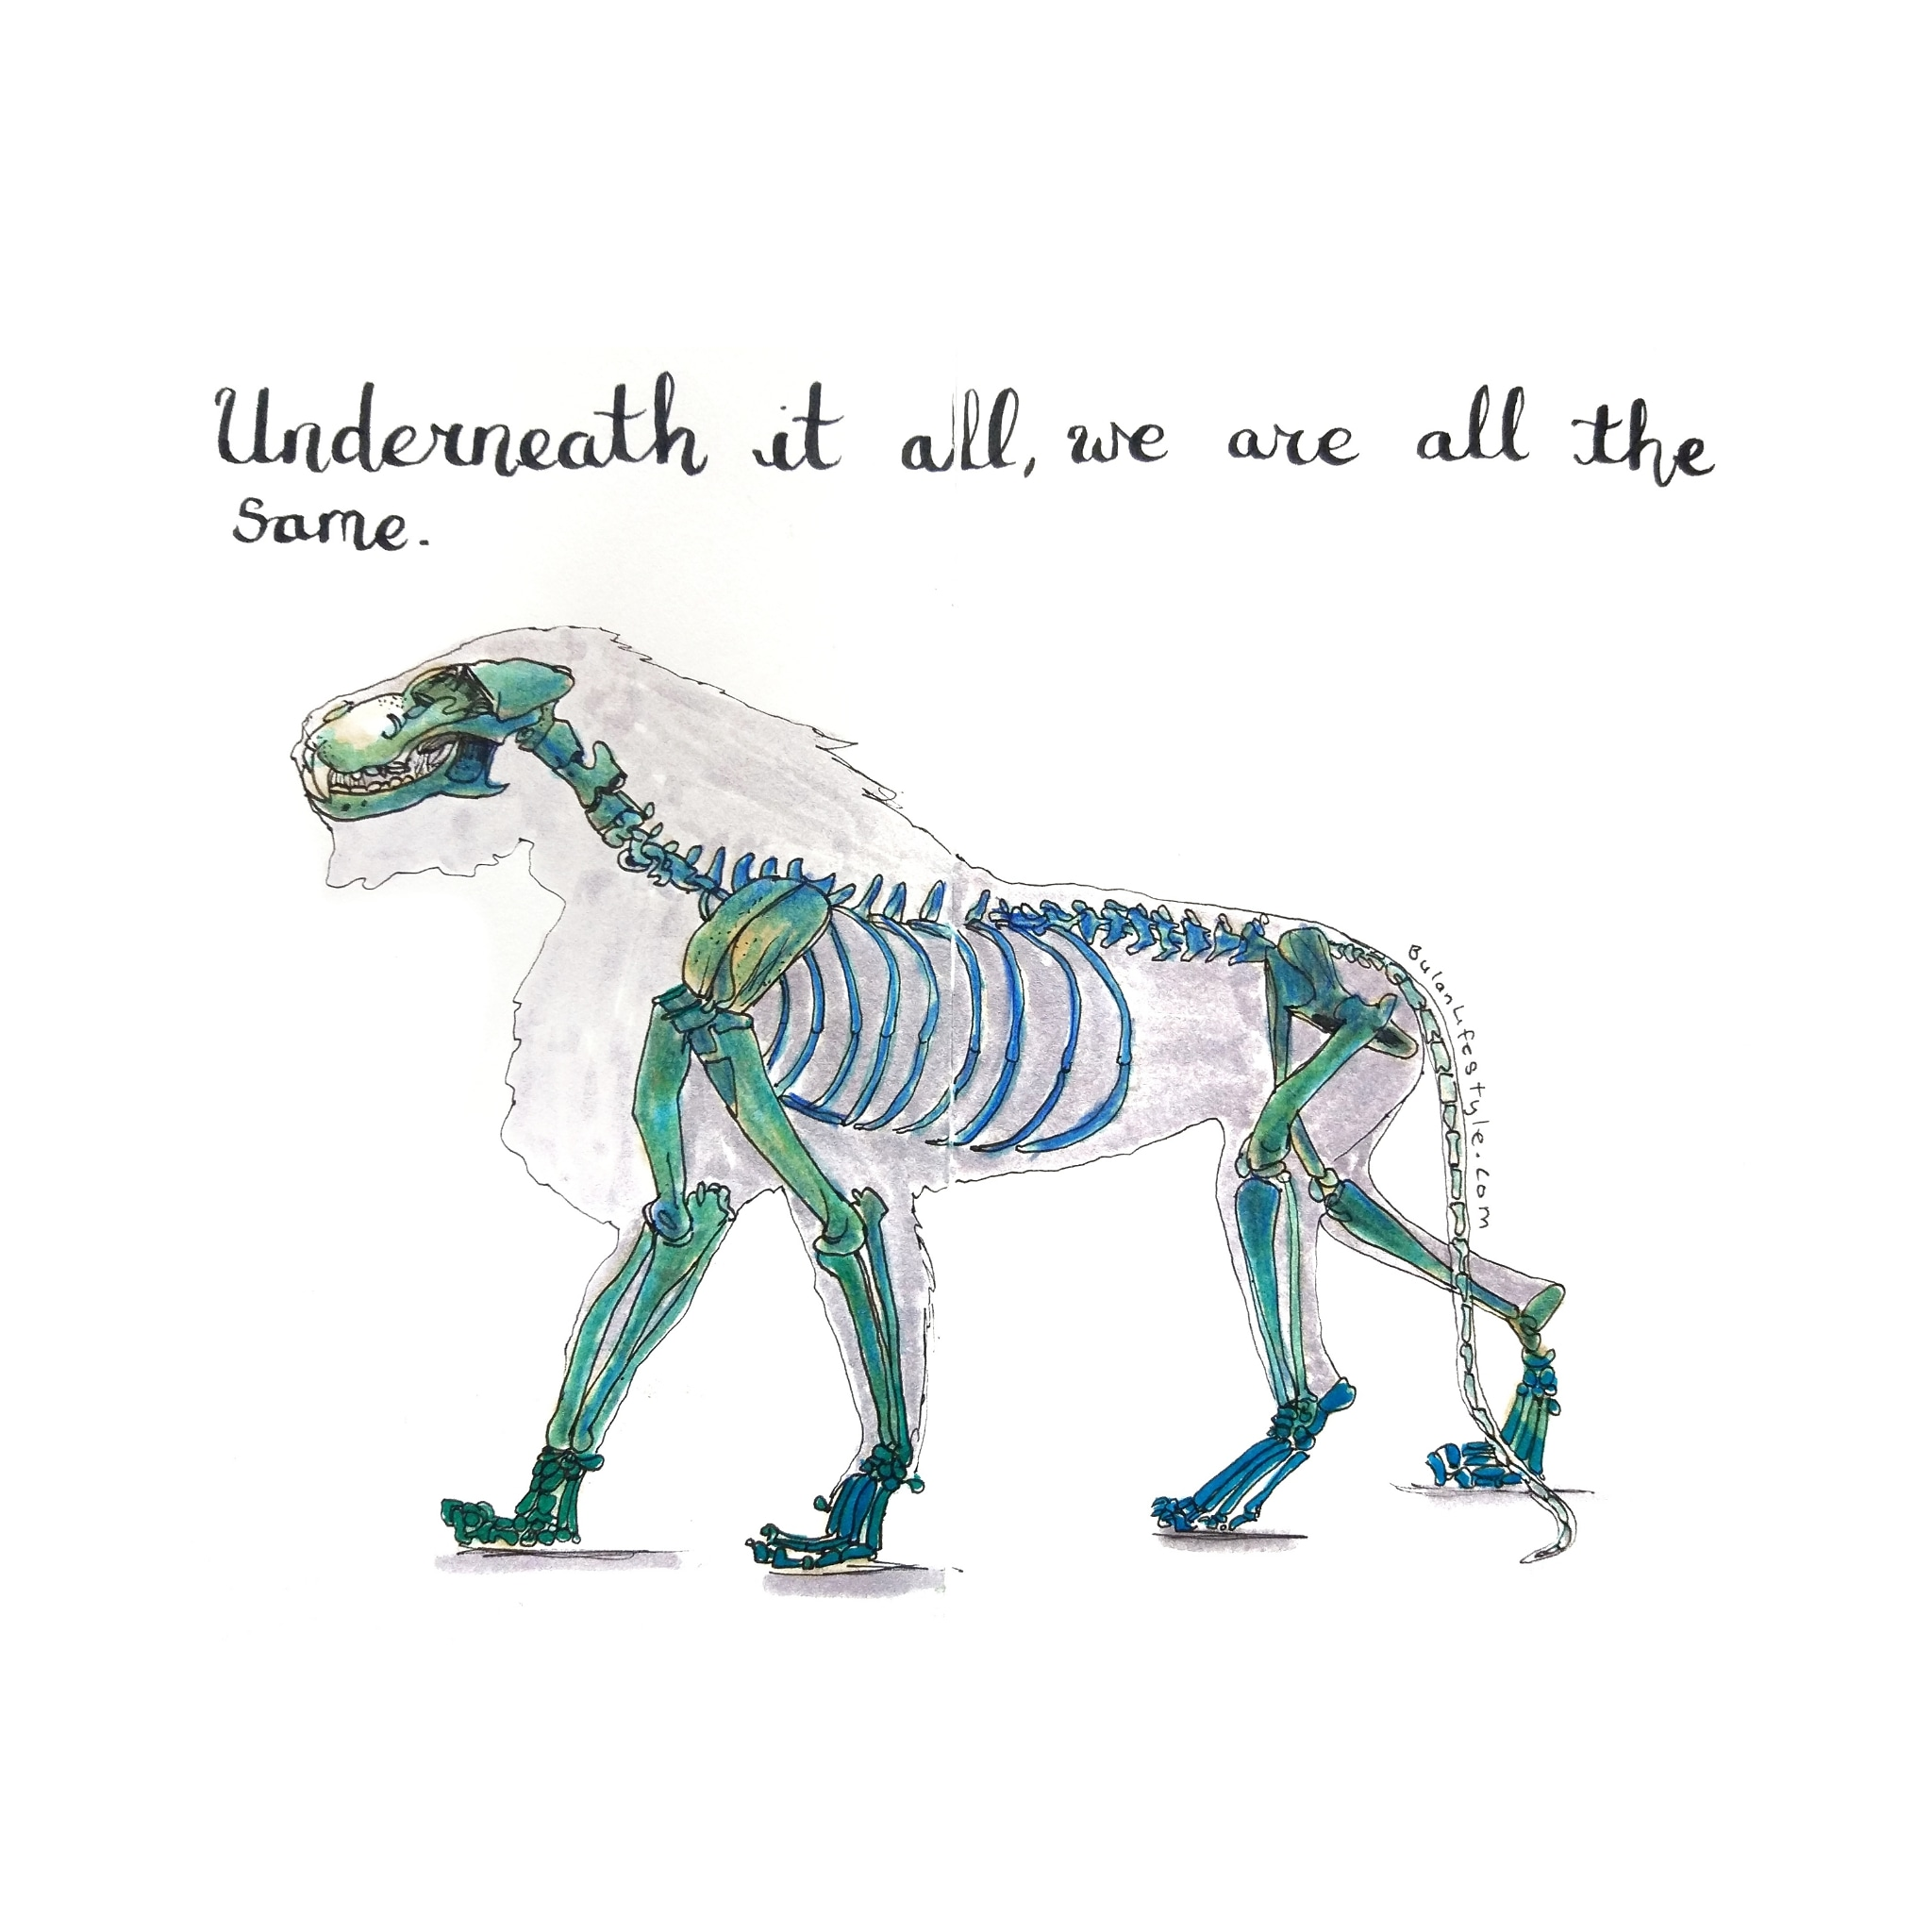 Underneath it all we are all the same